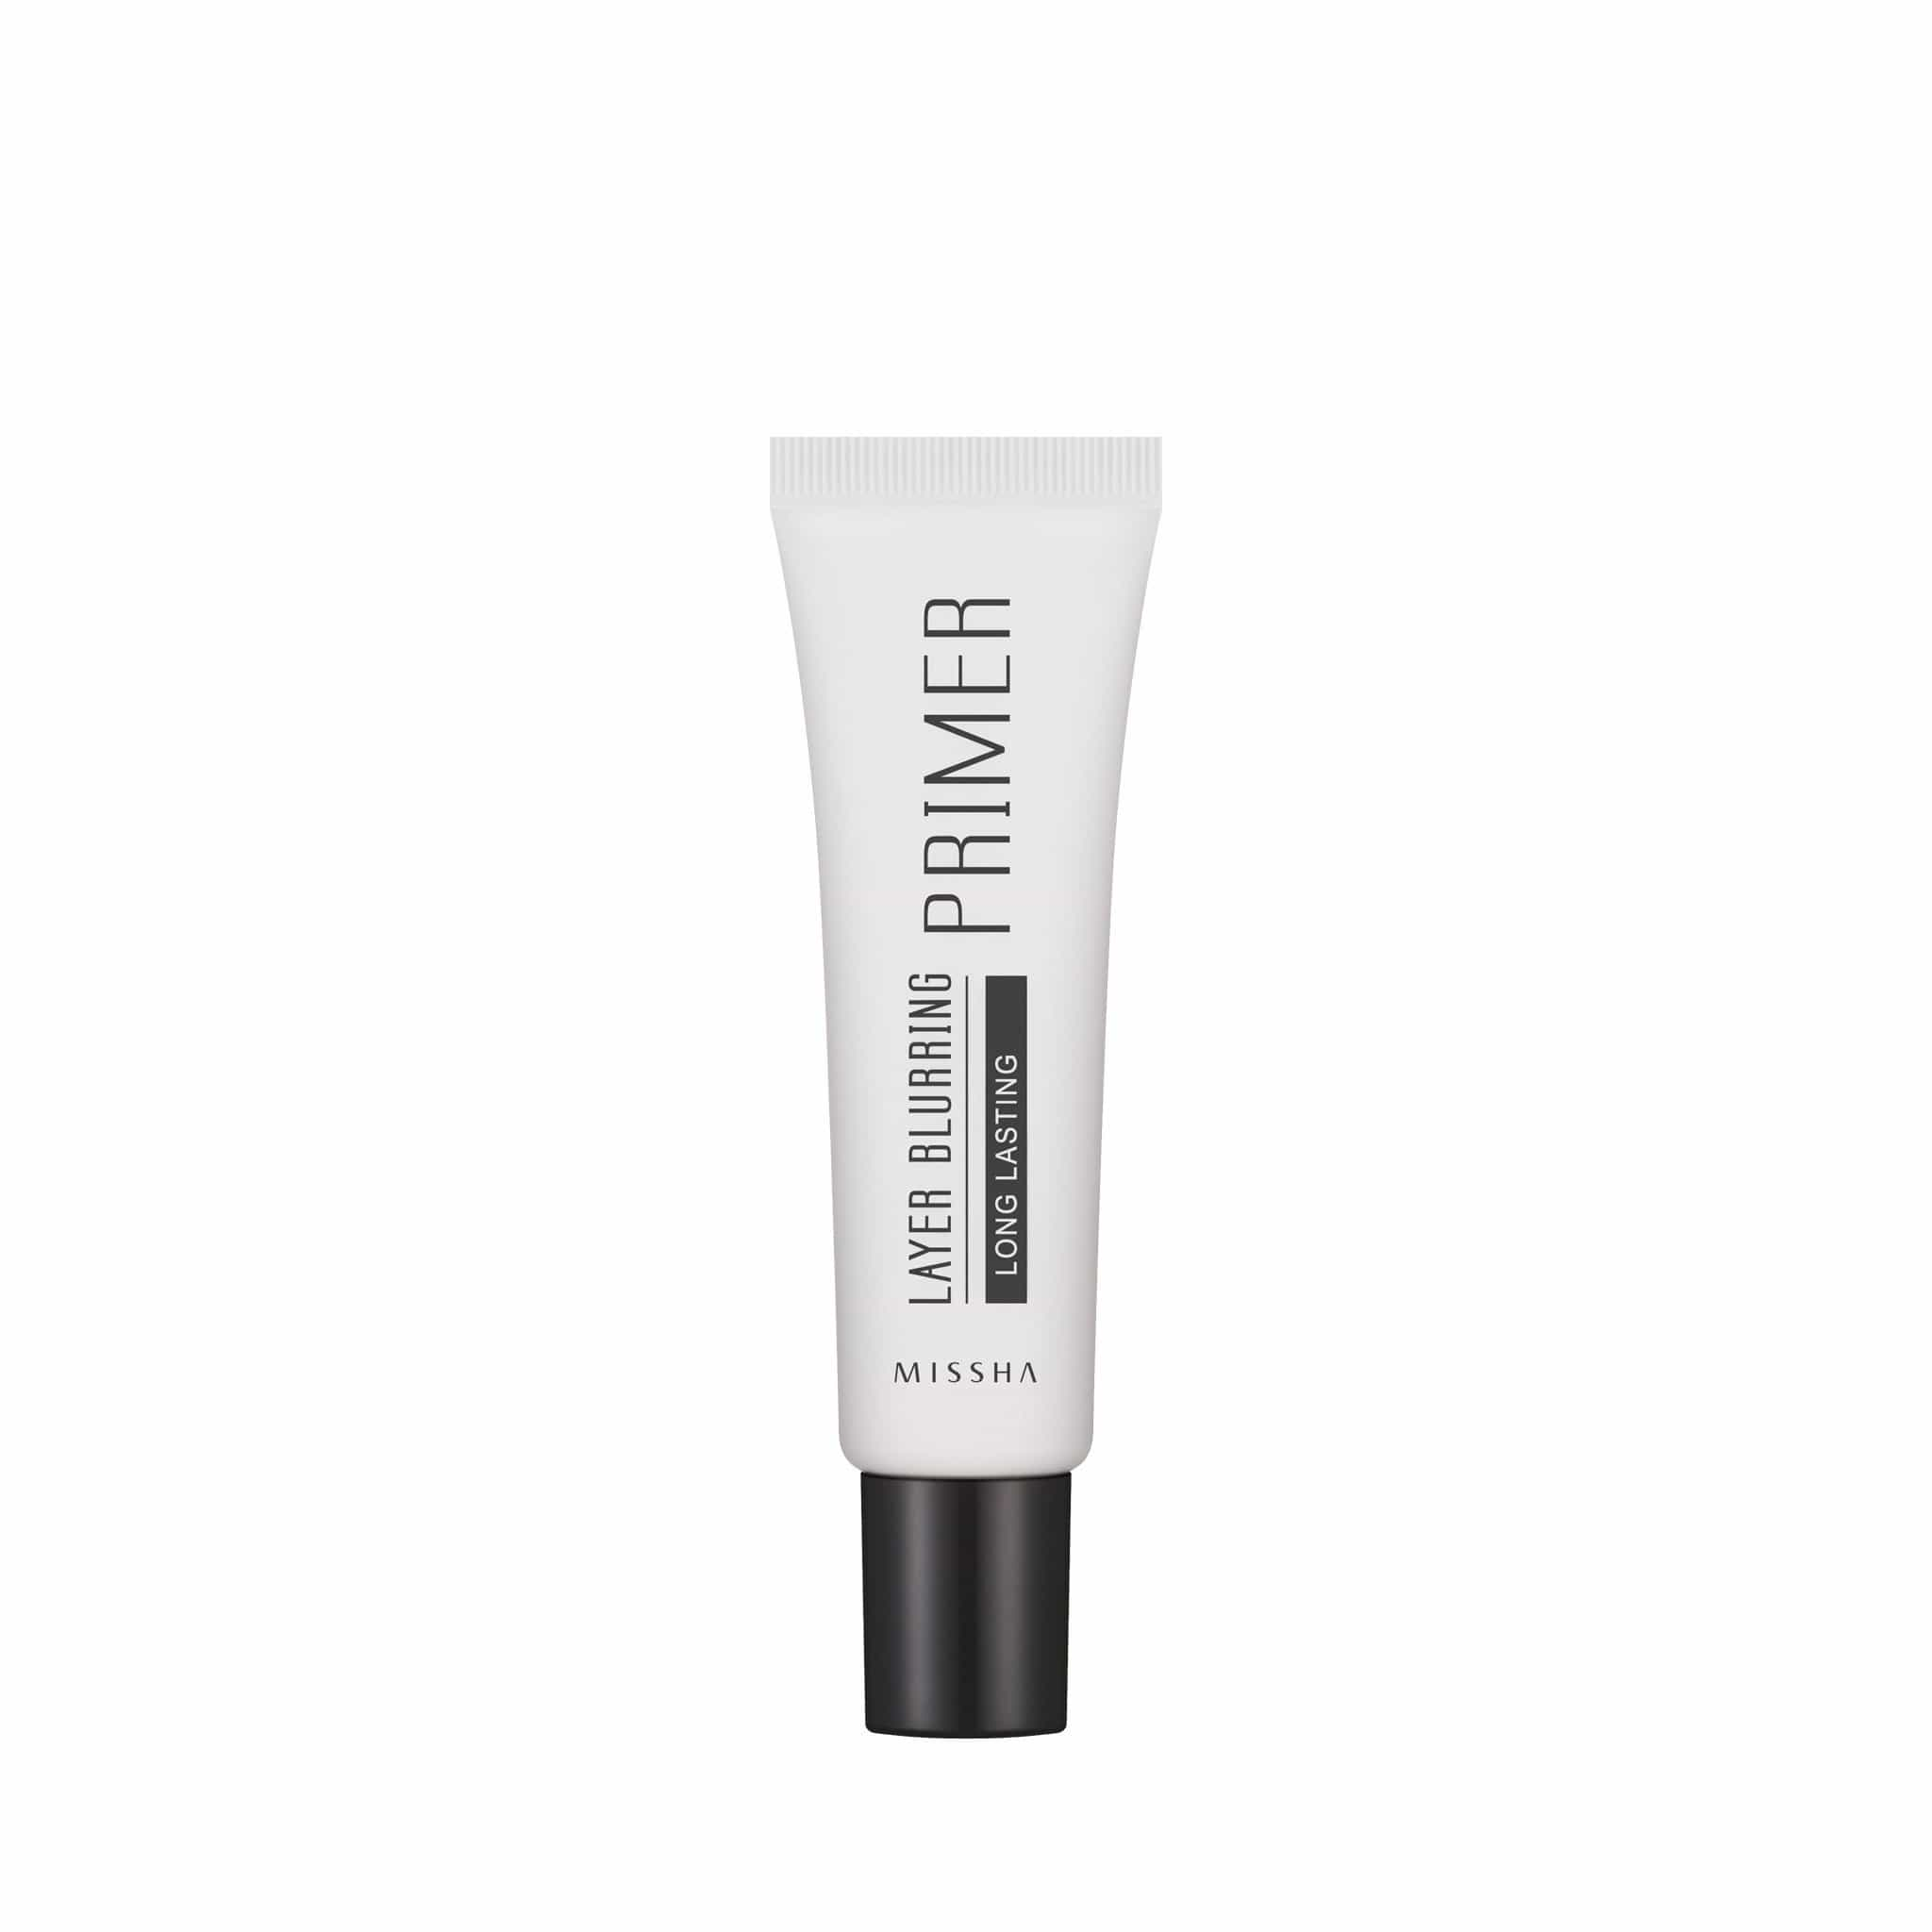 LAYER BLURRING PRIMER (LONG LASTING) - MISSHA